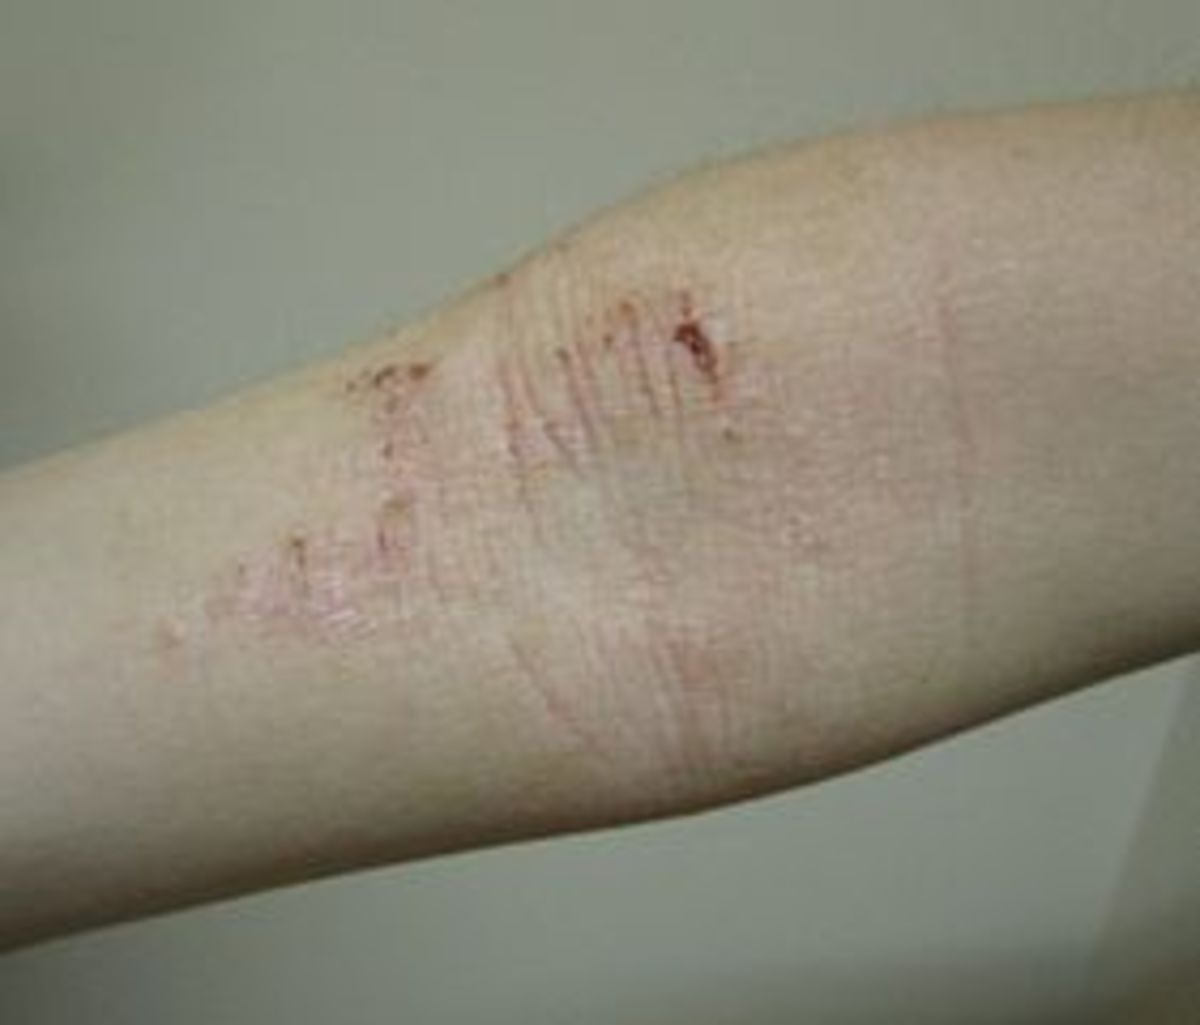 Atopic dermatitis (eczema) on the inside of the elbow